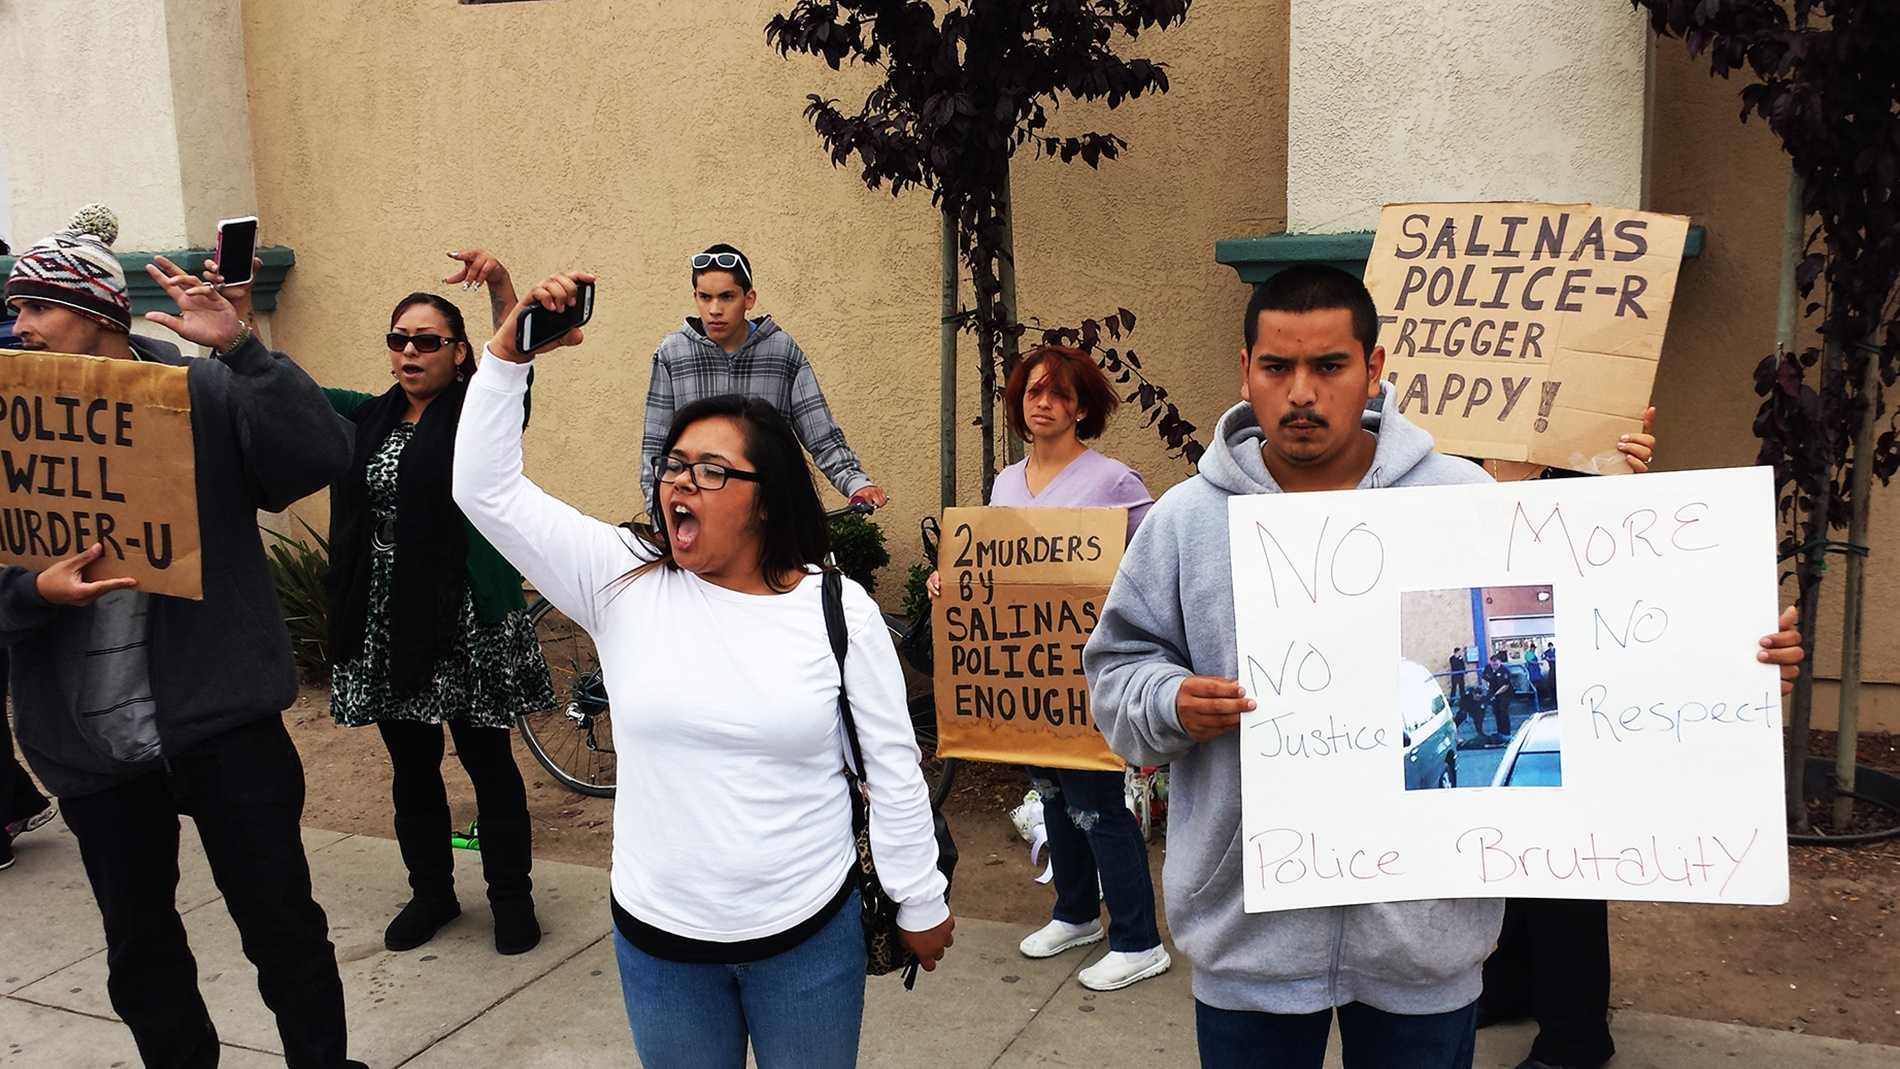 Resident protest Salinas police killing three people this year. (May 21, 2014)